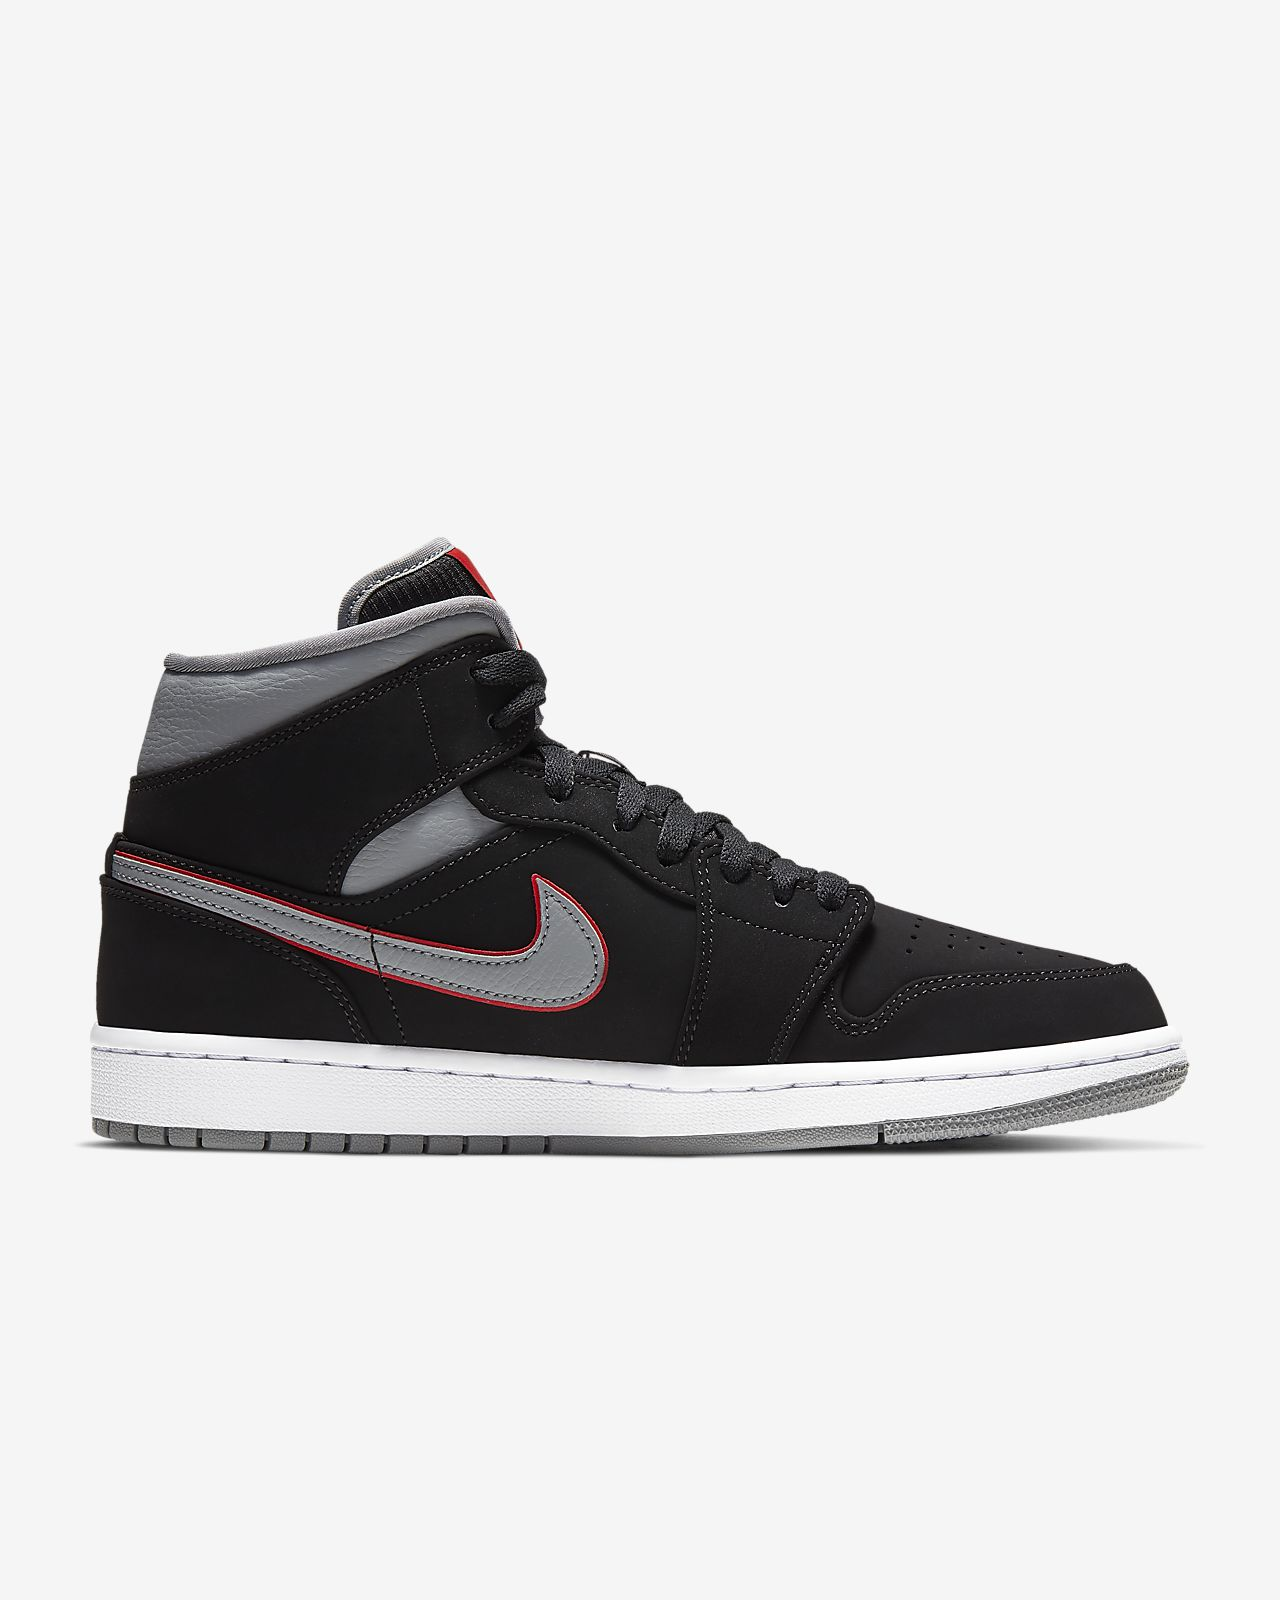 051b04832a2 Air Jordan 1 Mid Men s Shoe. Nike.com AU